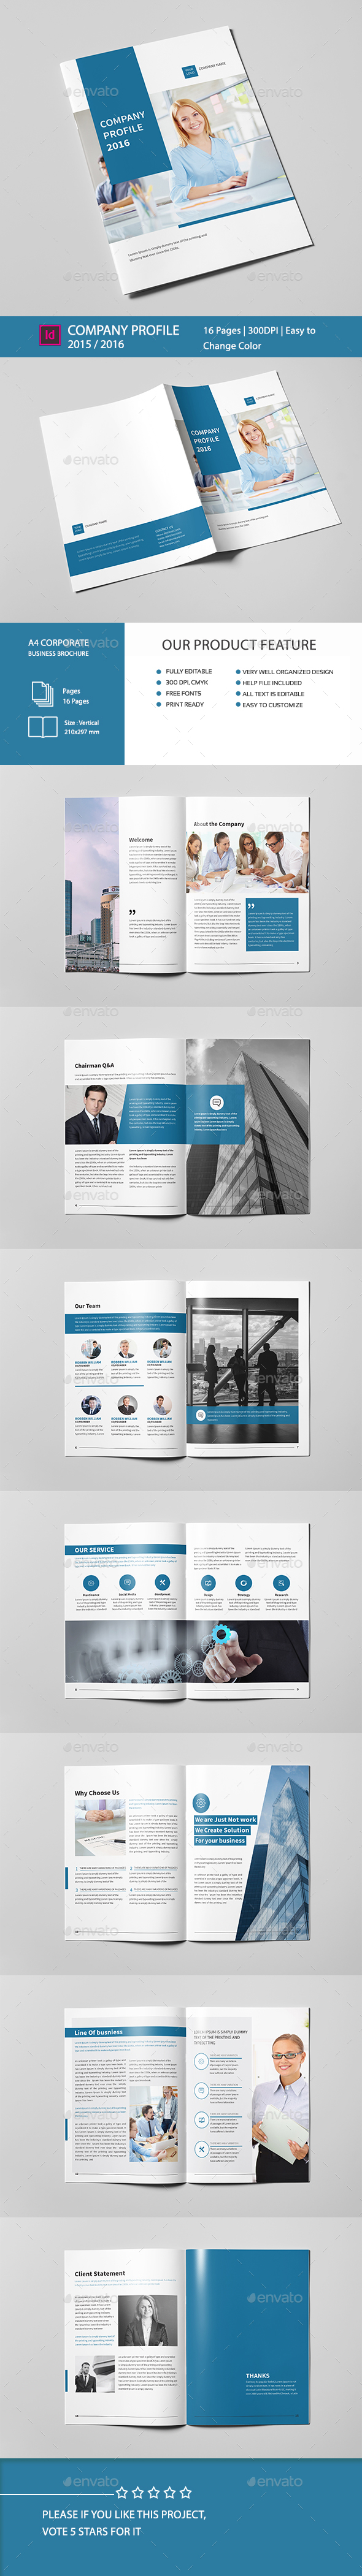 Company Profile Brochure 16 Pages A4 - Corporate Brochures